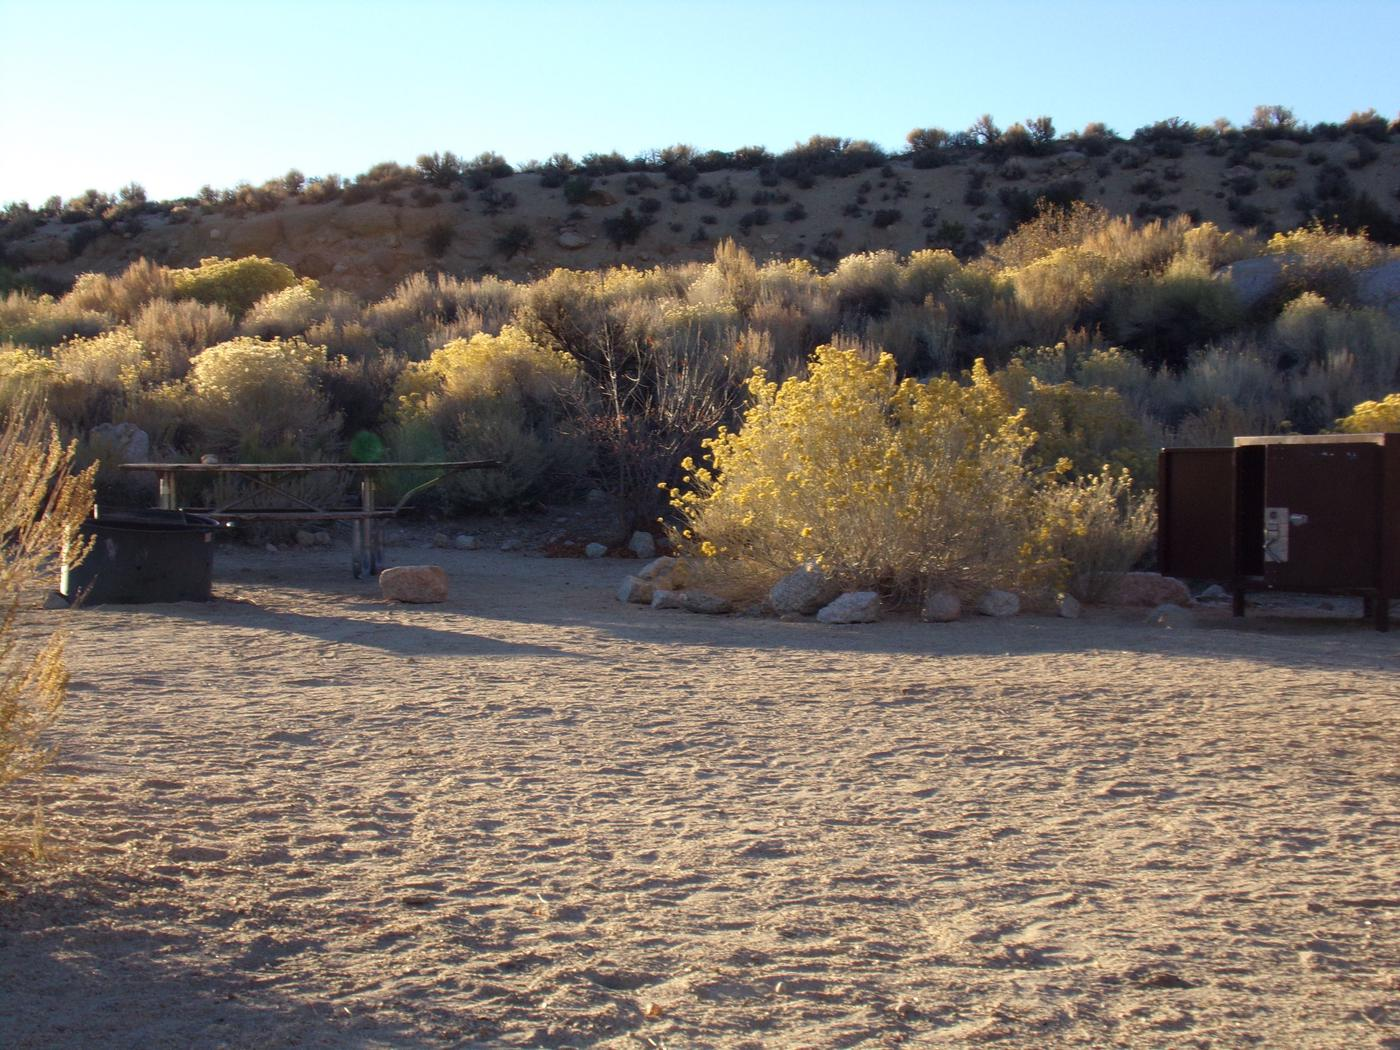 Lone Pine Campground site #04 featuring picnic area, food storage, fire pit, and camping space.